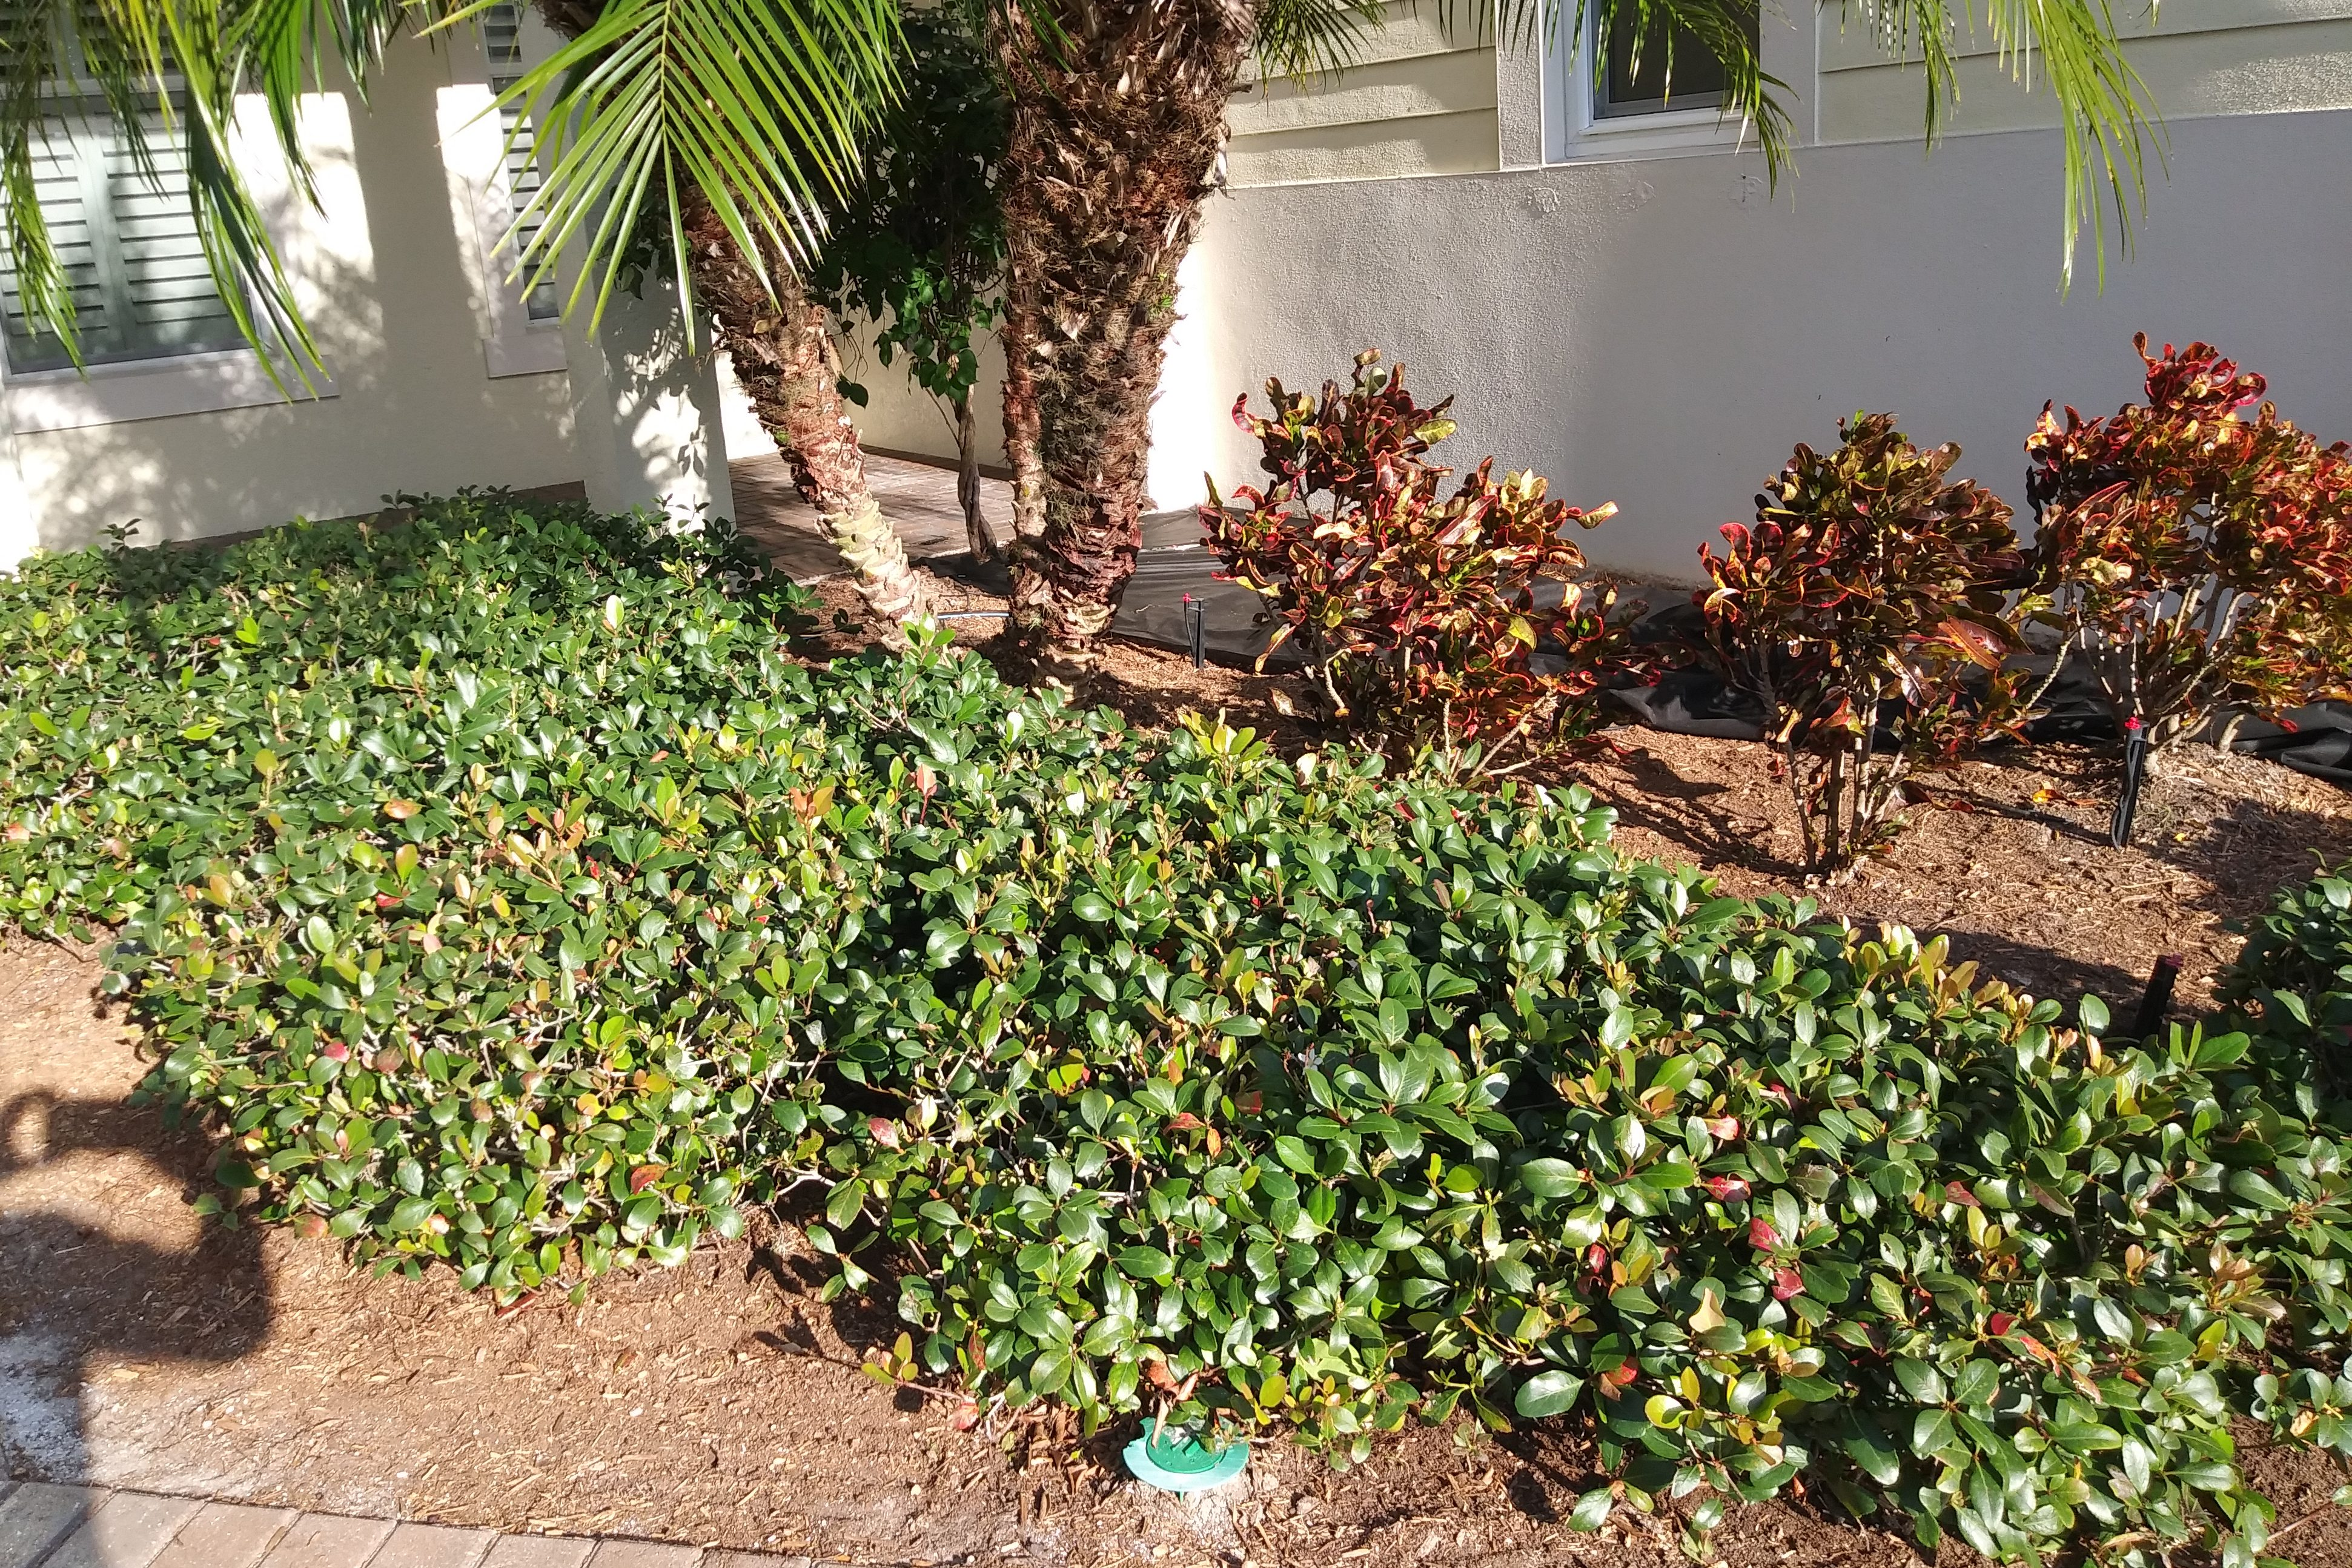 Landscaping: Removing Mulch and installing Rock. DYI Adventures. FitlifeandTravel.com